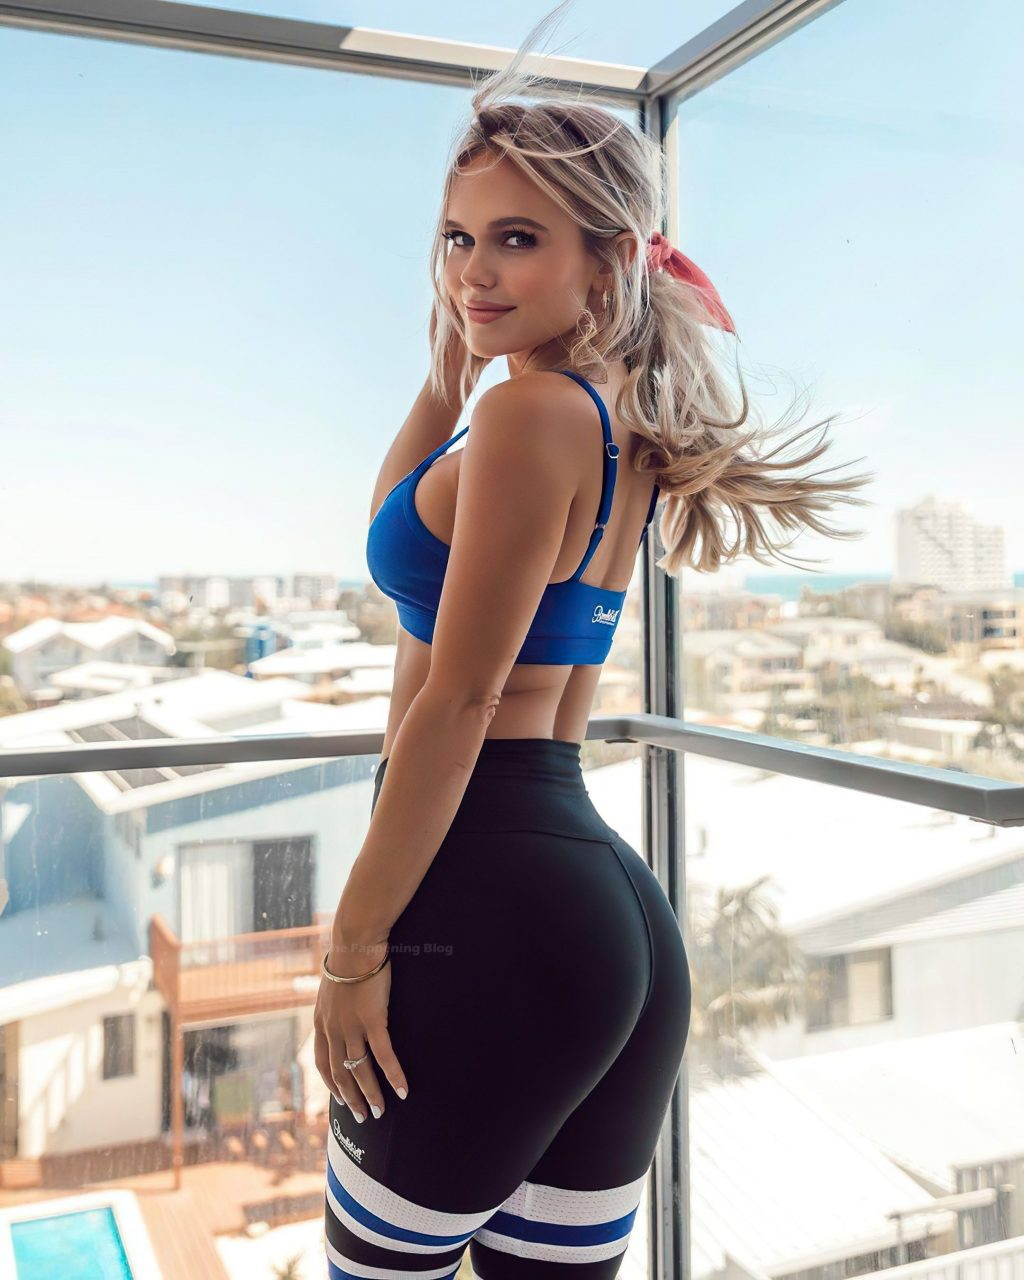 Hilde Osland Shows Off Her Booty in Leggings (6 Photos)